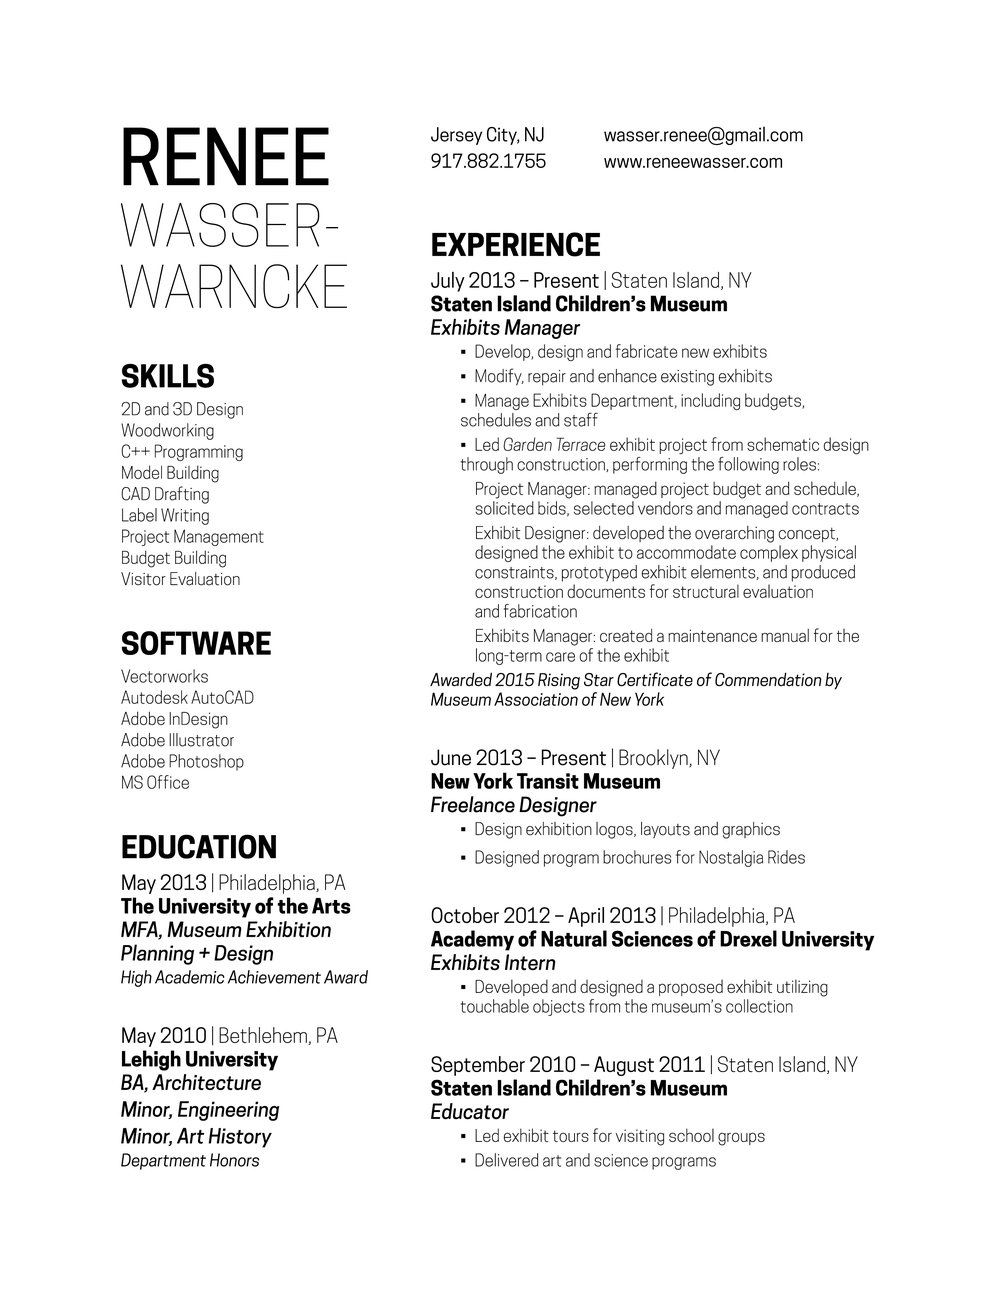 ReneeWasserWarncke_Resume.jpg